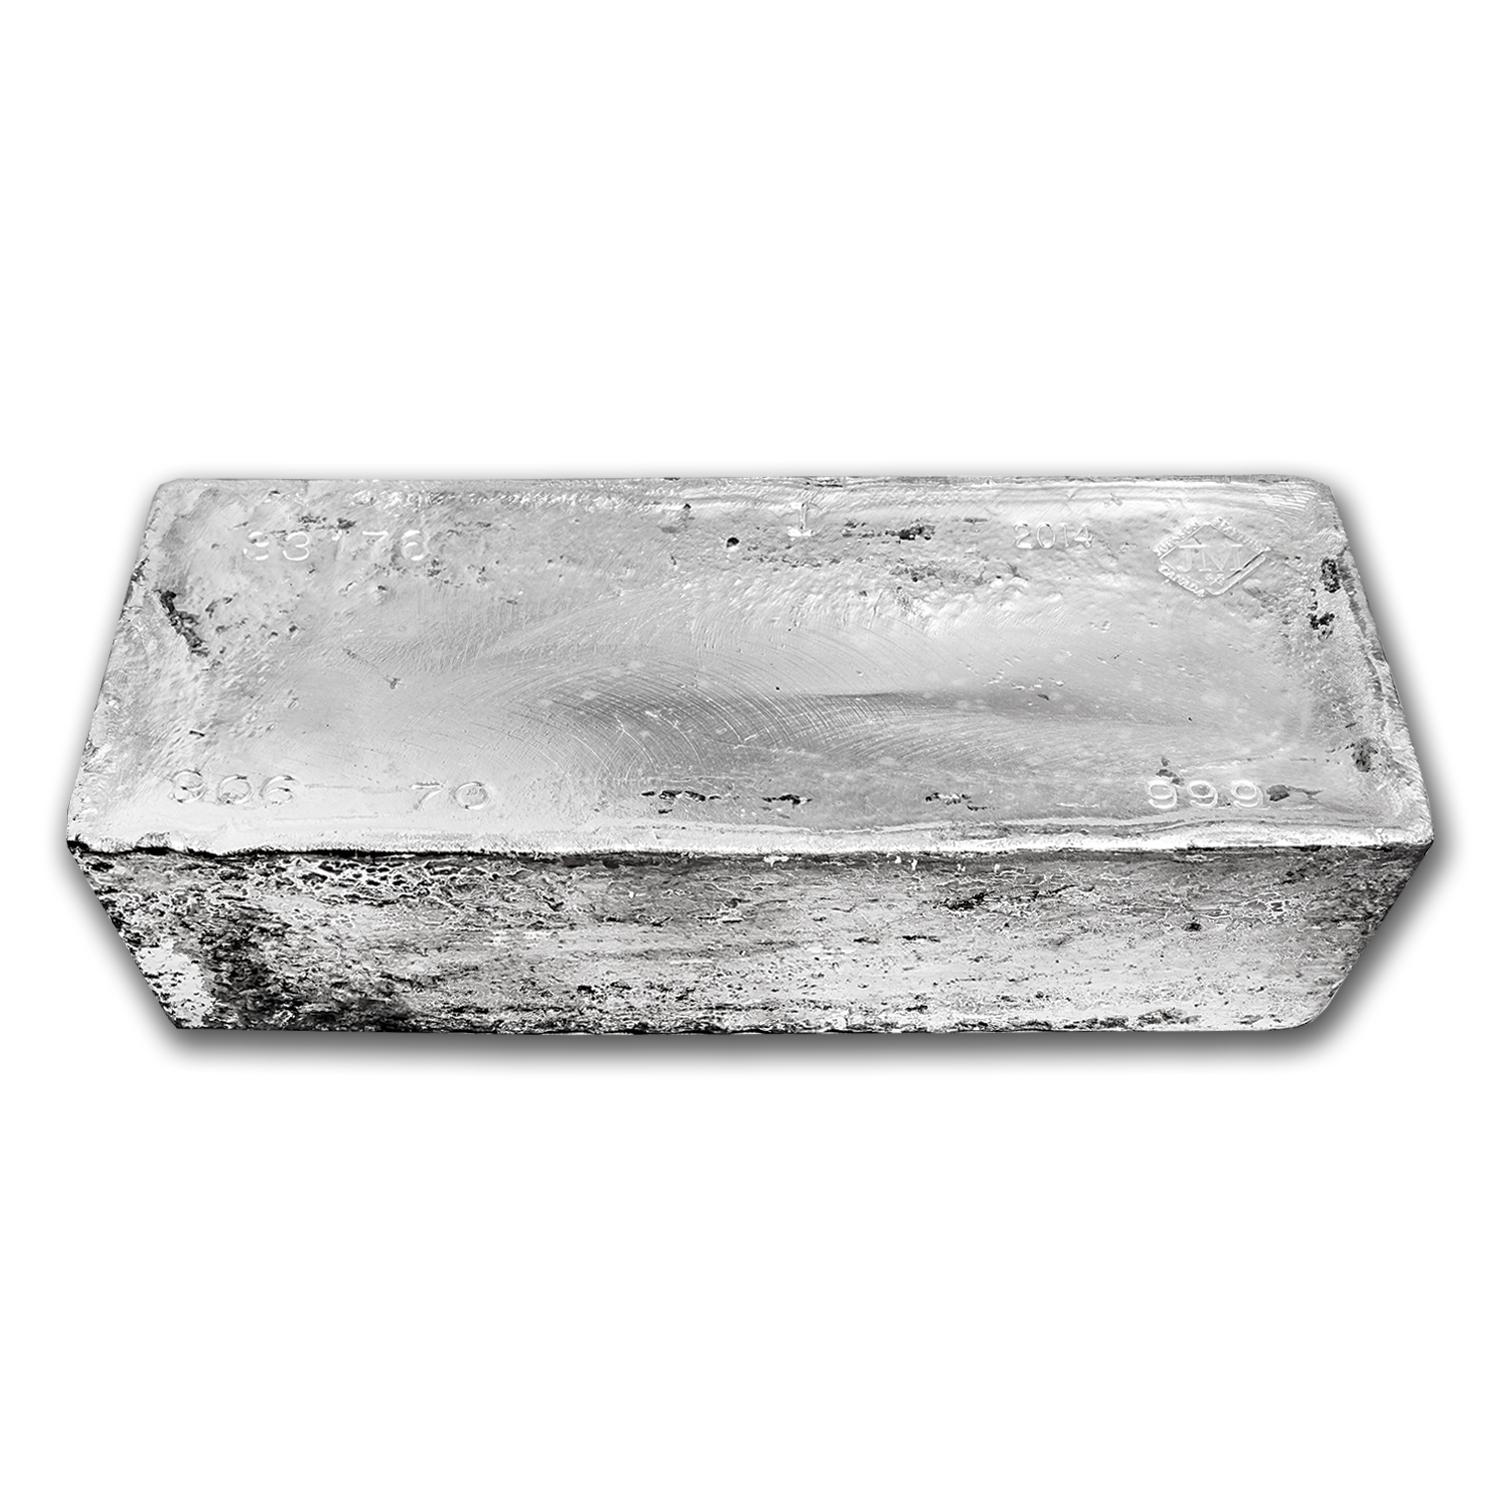 985.80 oz Silver Bars - Johnson Matthey